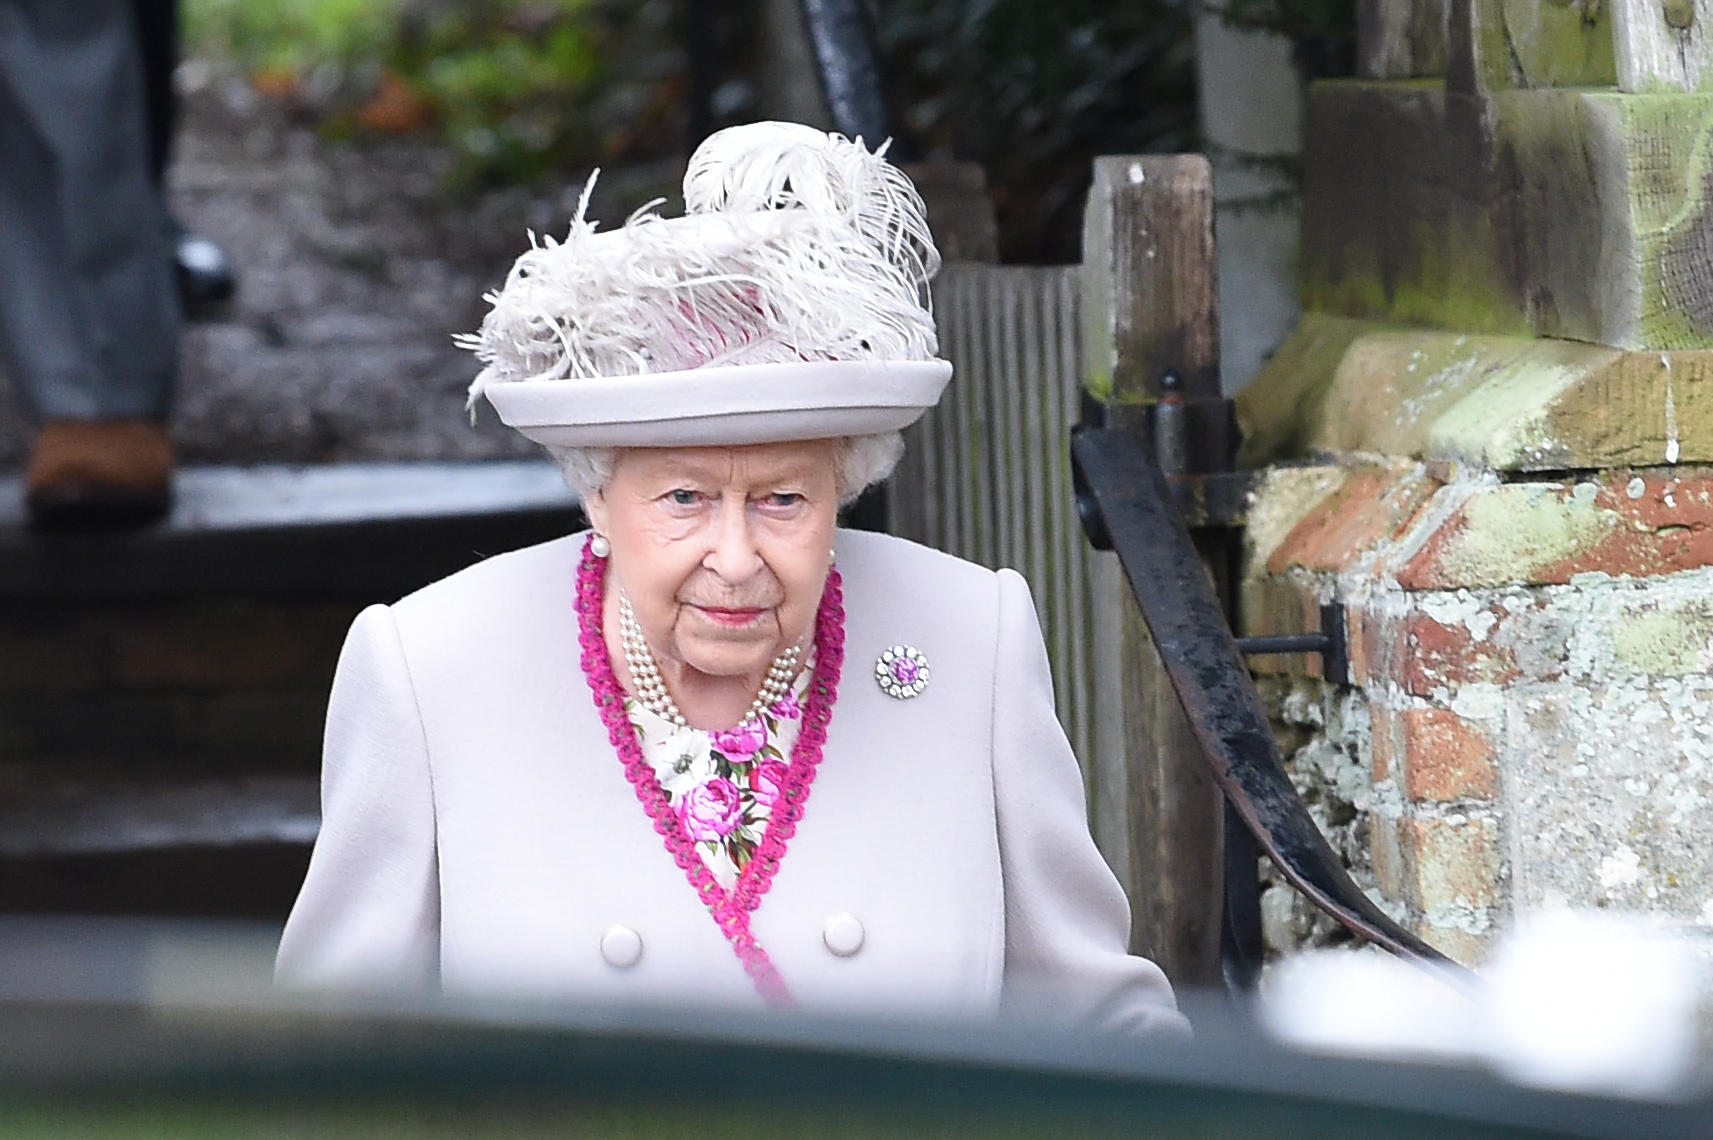 Britain's Queen Elizabeth II departs the Royal Family's traditional Christmas Day service at St Mary Magdalene Church in Sandringham, Norfolk, eastern England, on December 25, 2018.